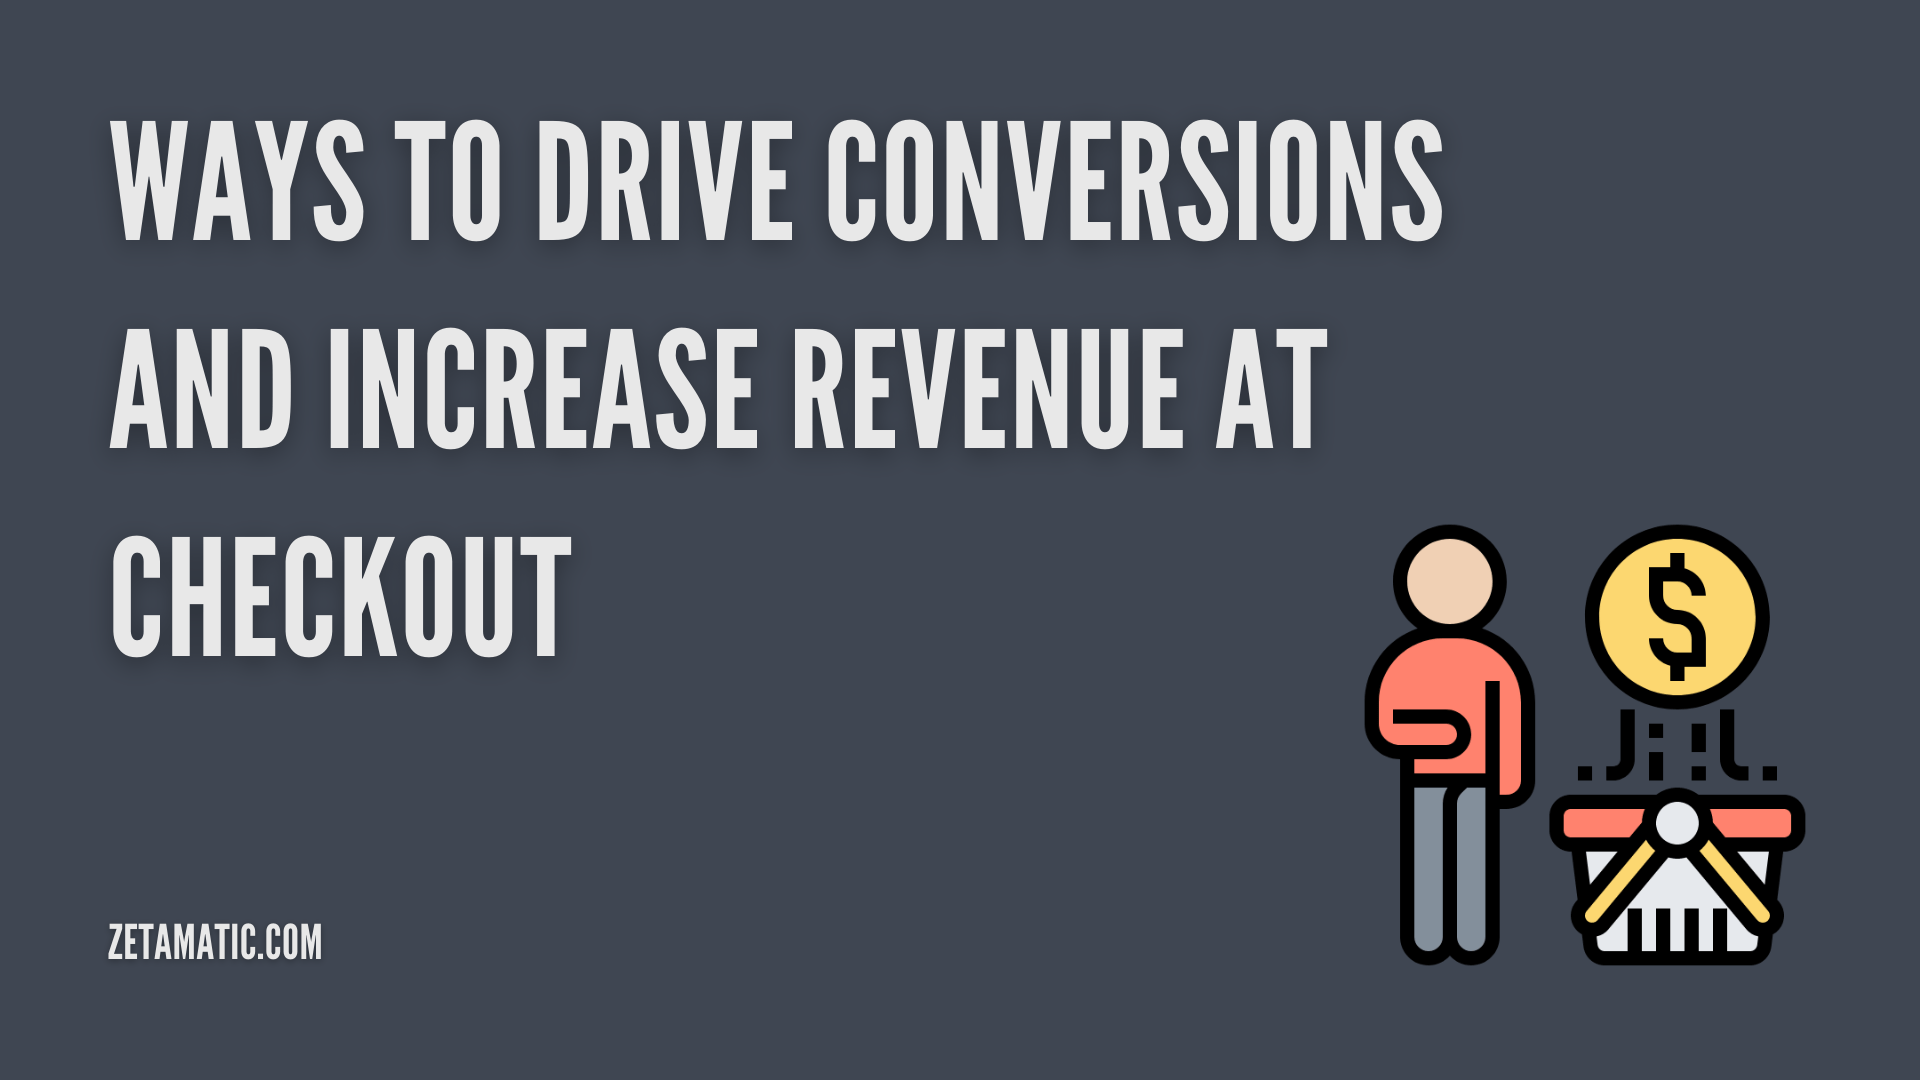 Ways to Drive Conversions and Increase Revenue at Checkout